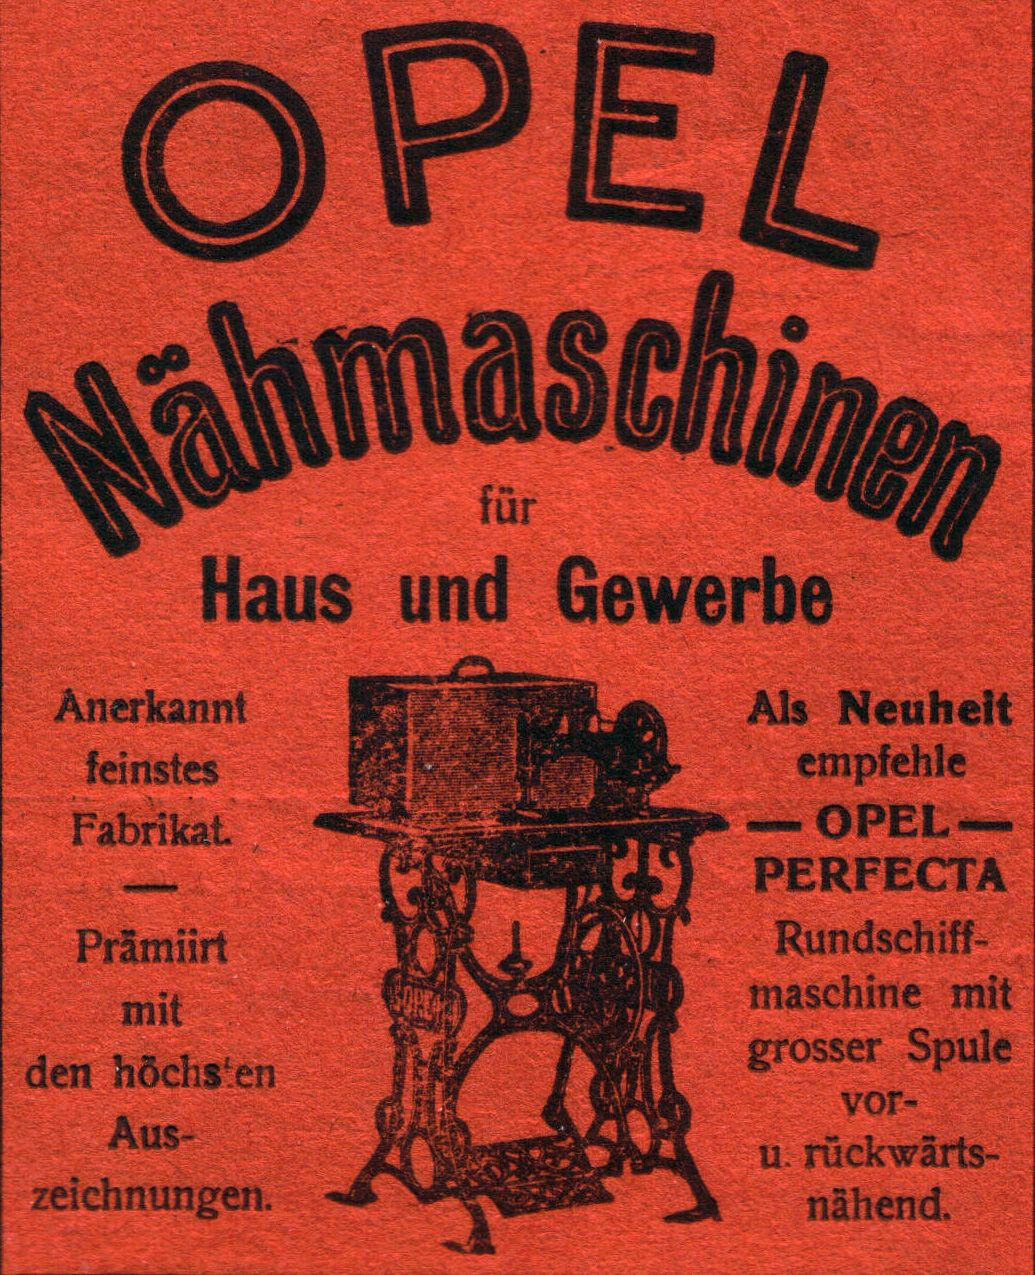 Advertisement for Opel Perfecta-Sewing Machines (1901)